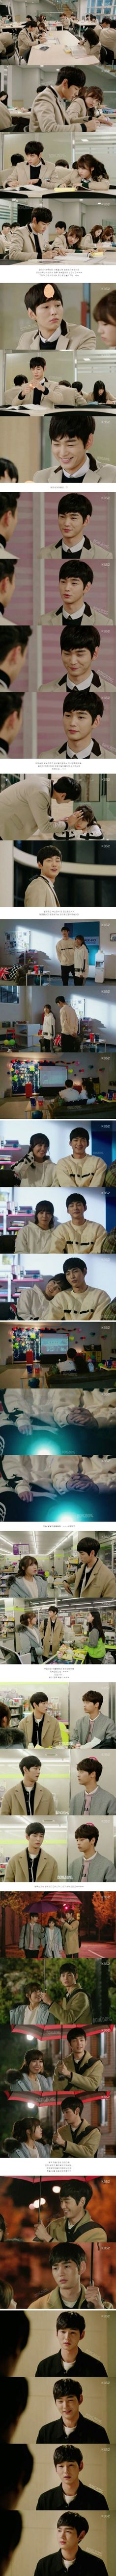 Added episode 11 captures for the Korean drama 'Cheeky Go Go'.